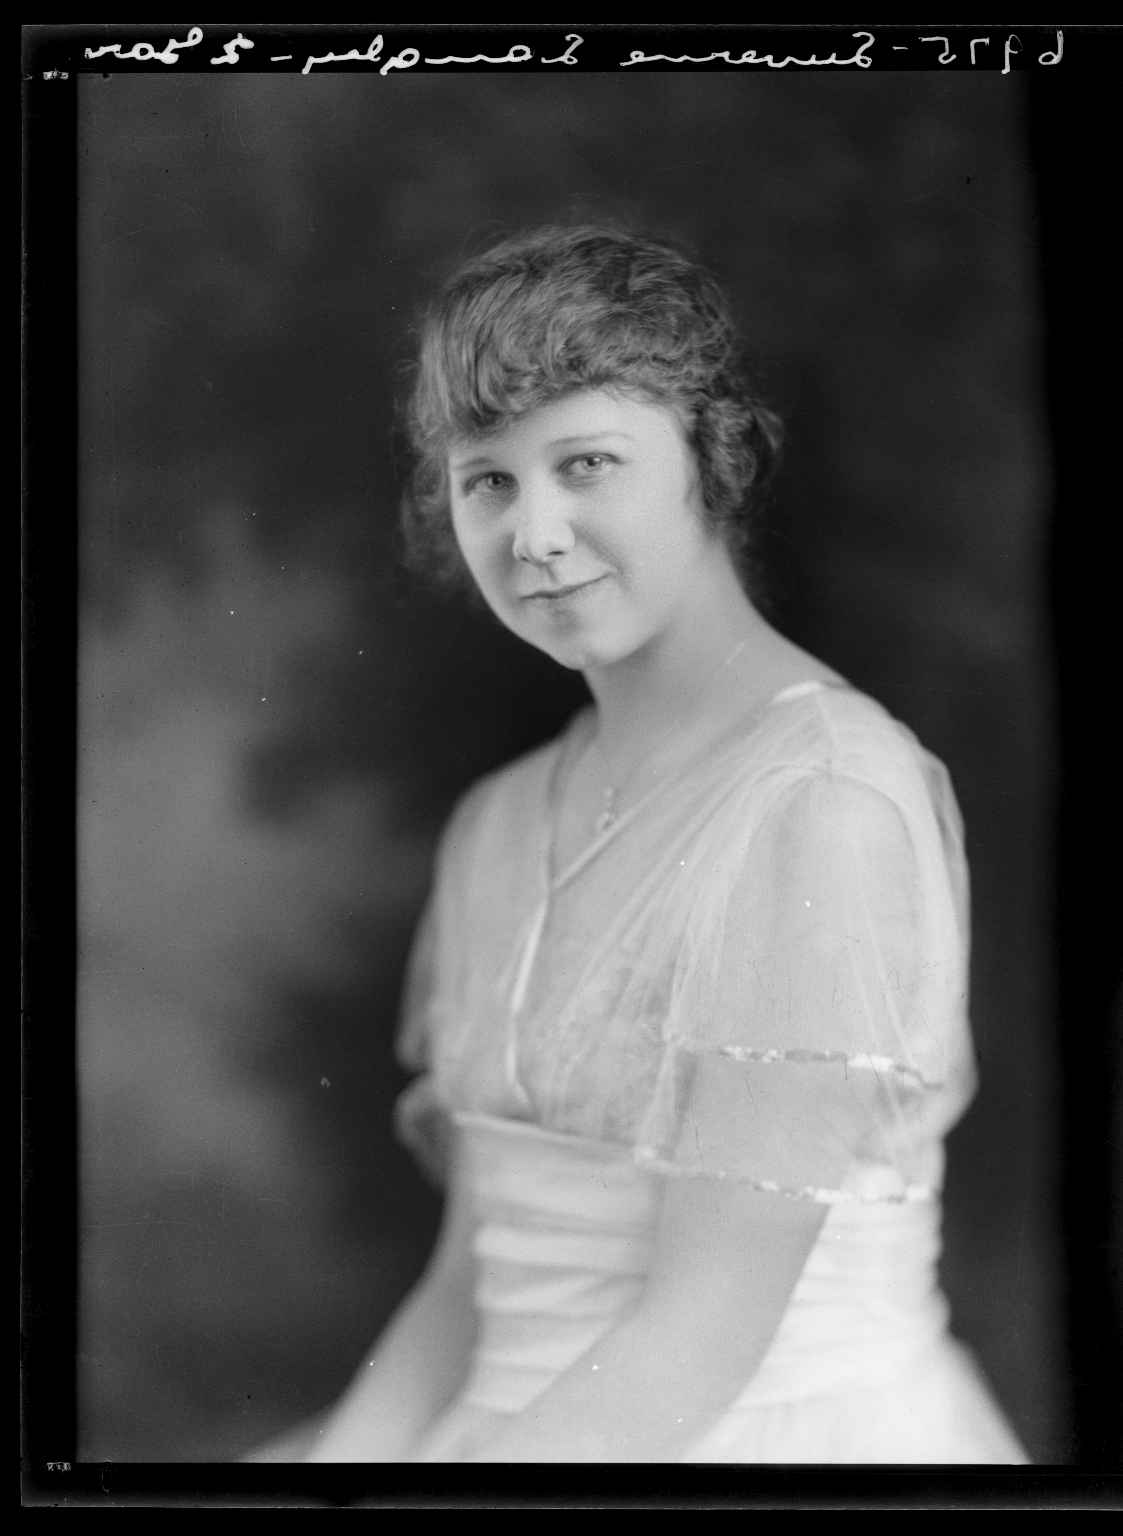 Portraits of Luverne Langley